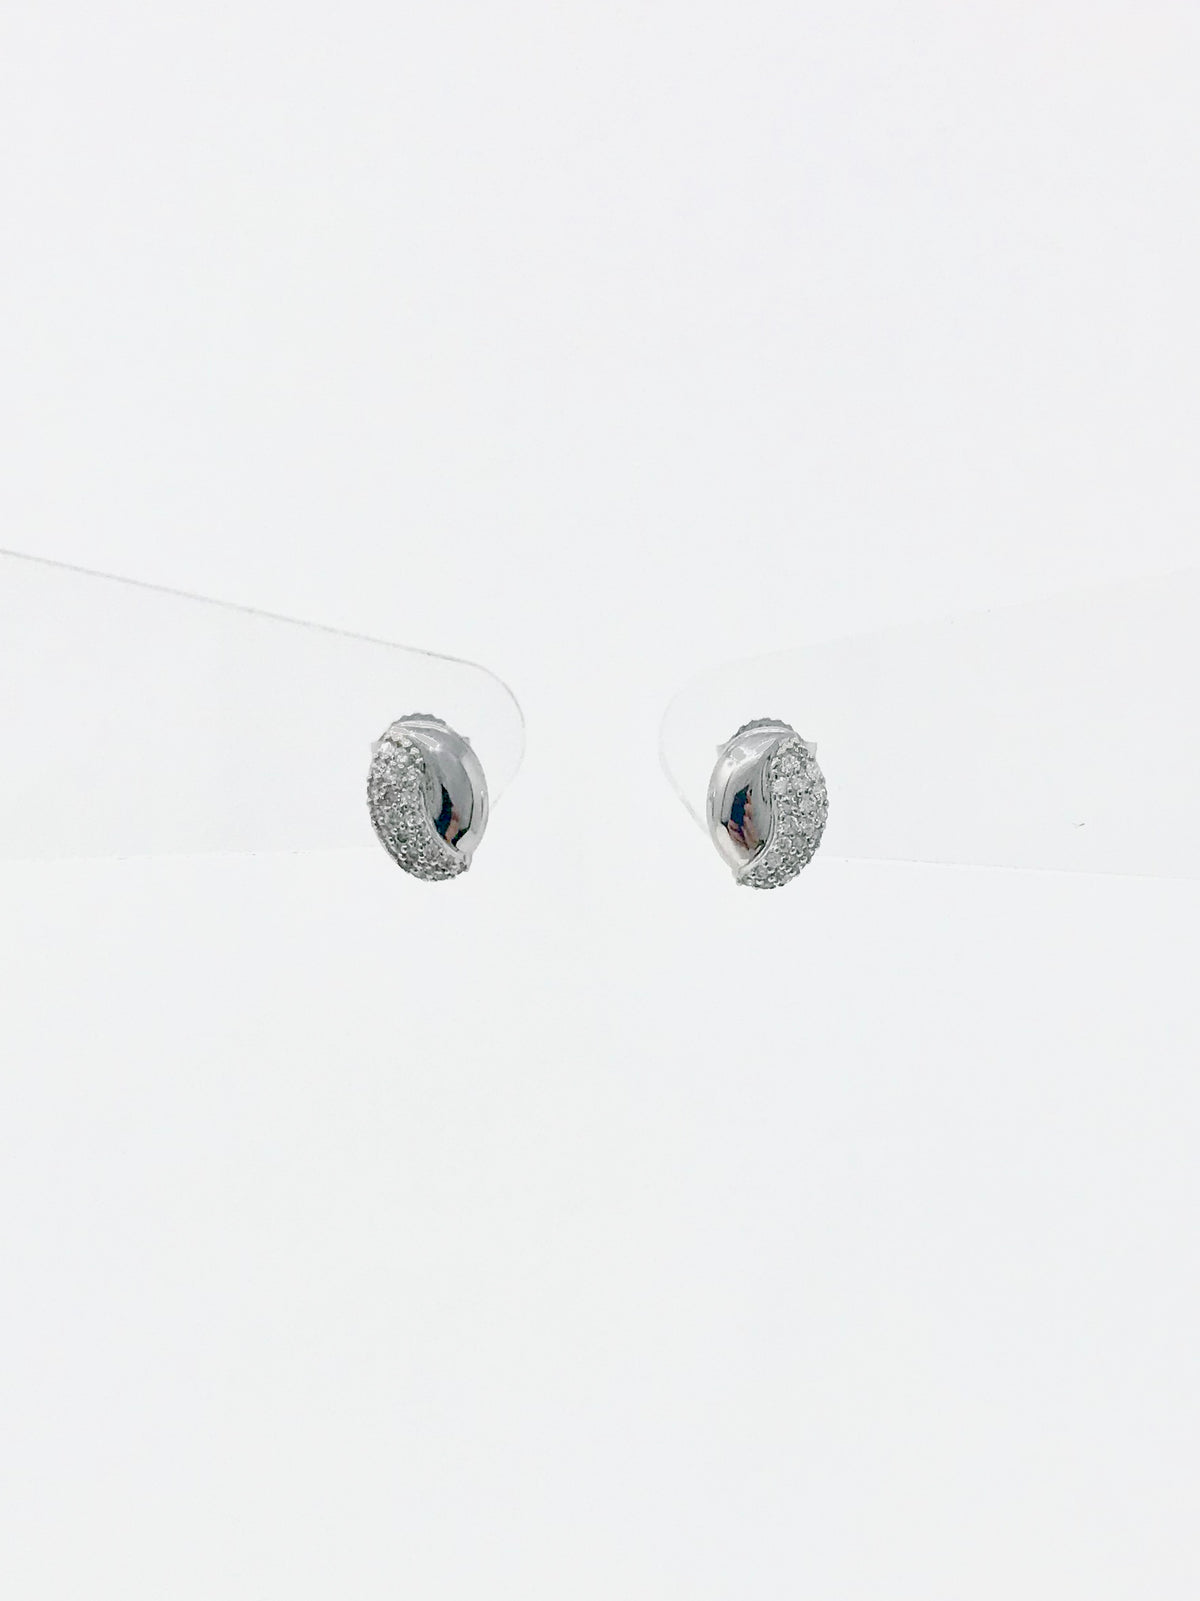 10K White Gold 0.28cttw Pave Diamond Stud Earrings